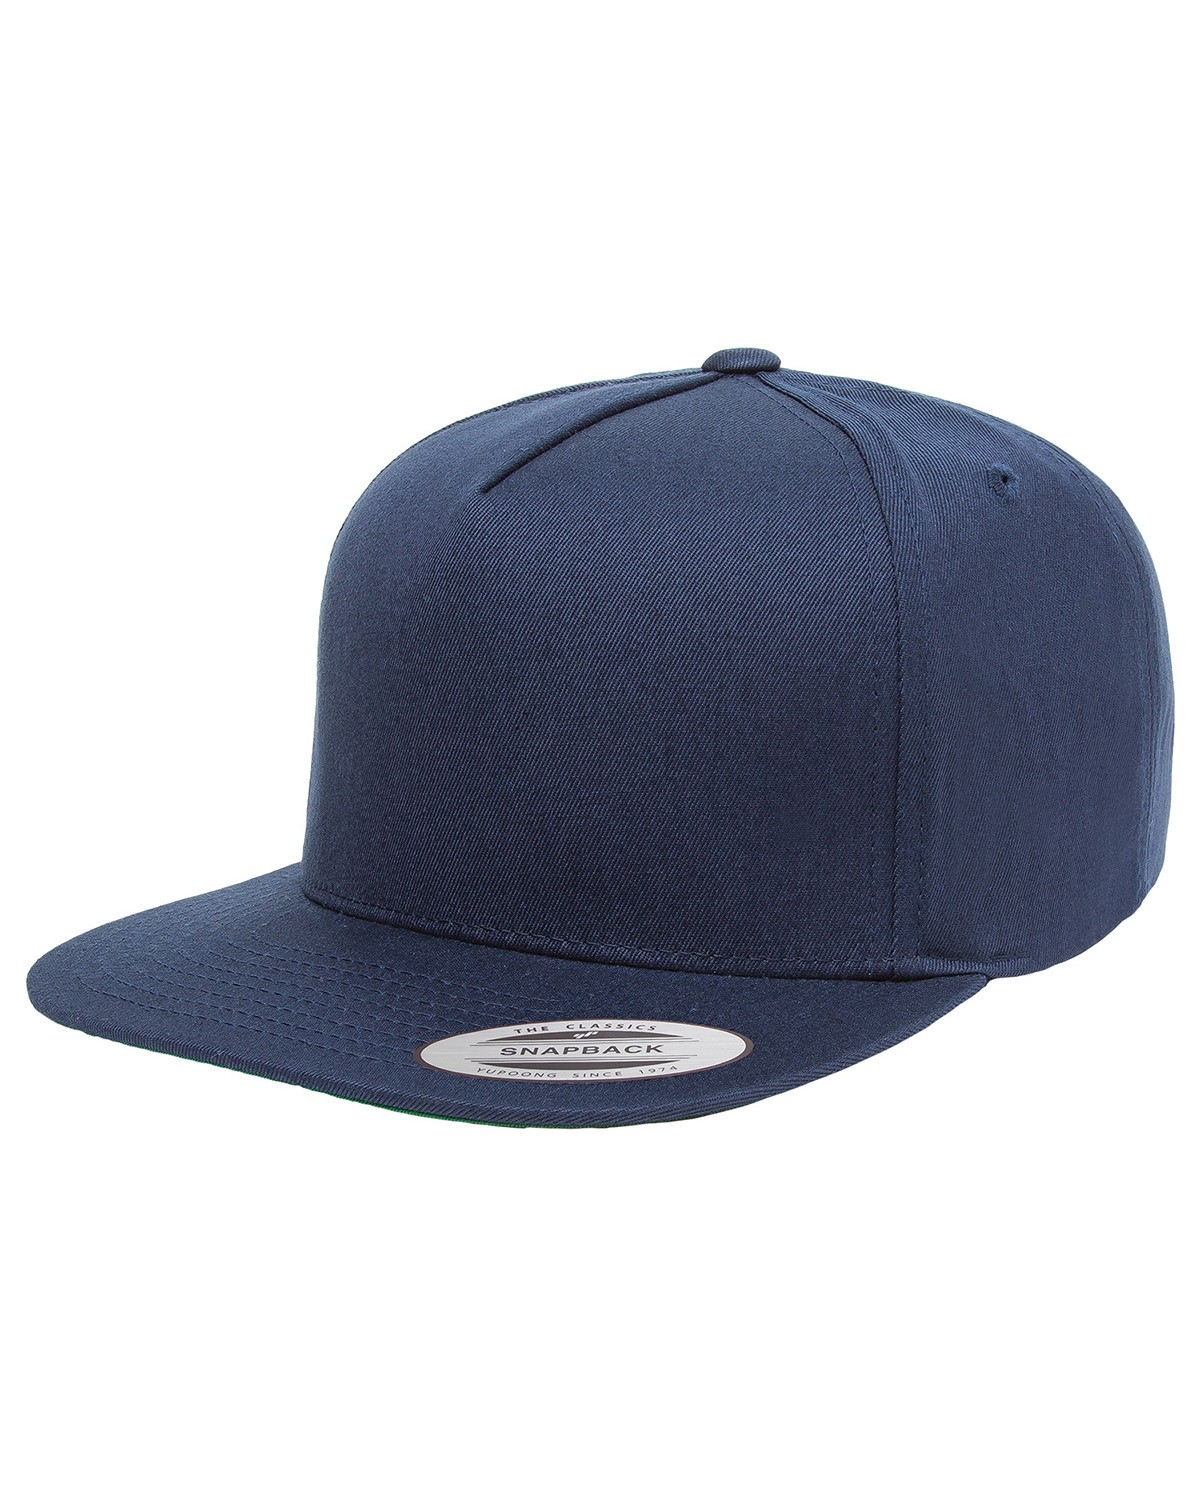 Y6007 Yupoong NAVY